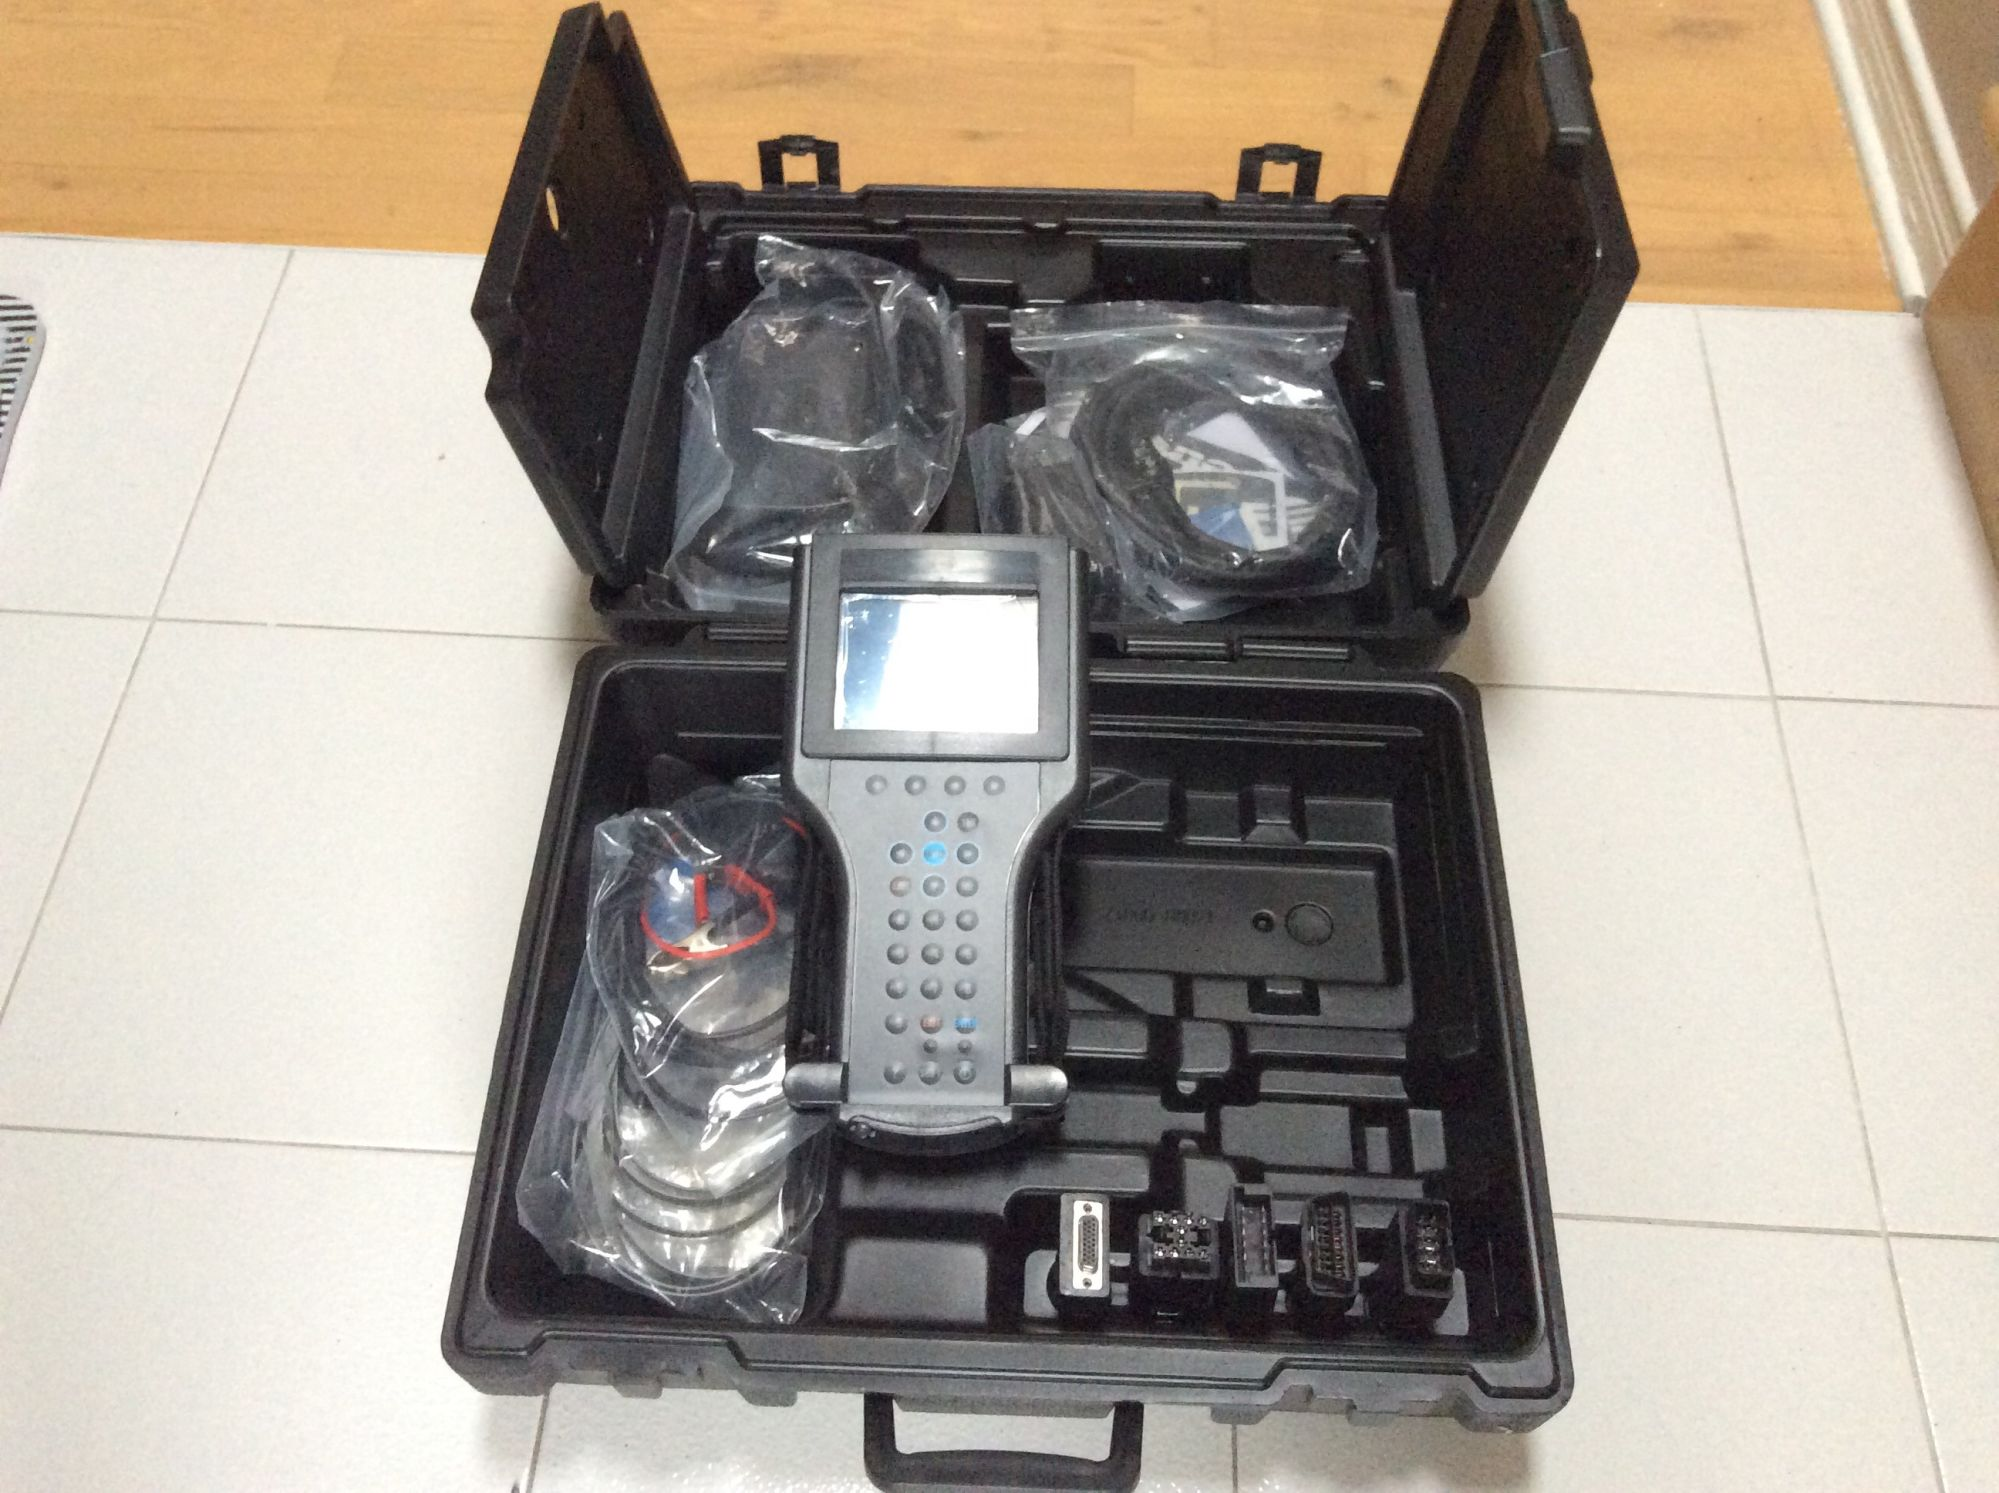 gm tech 2 whole package-02